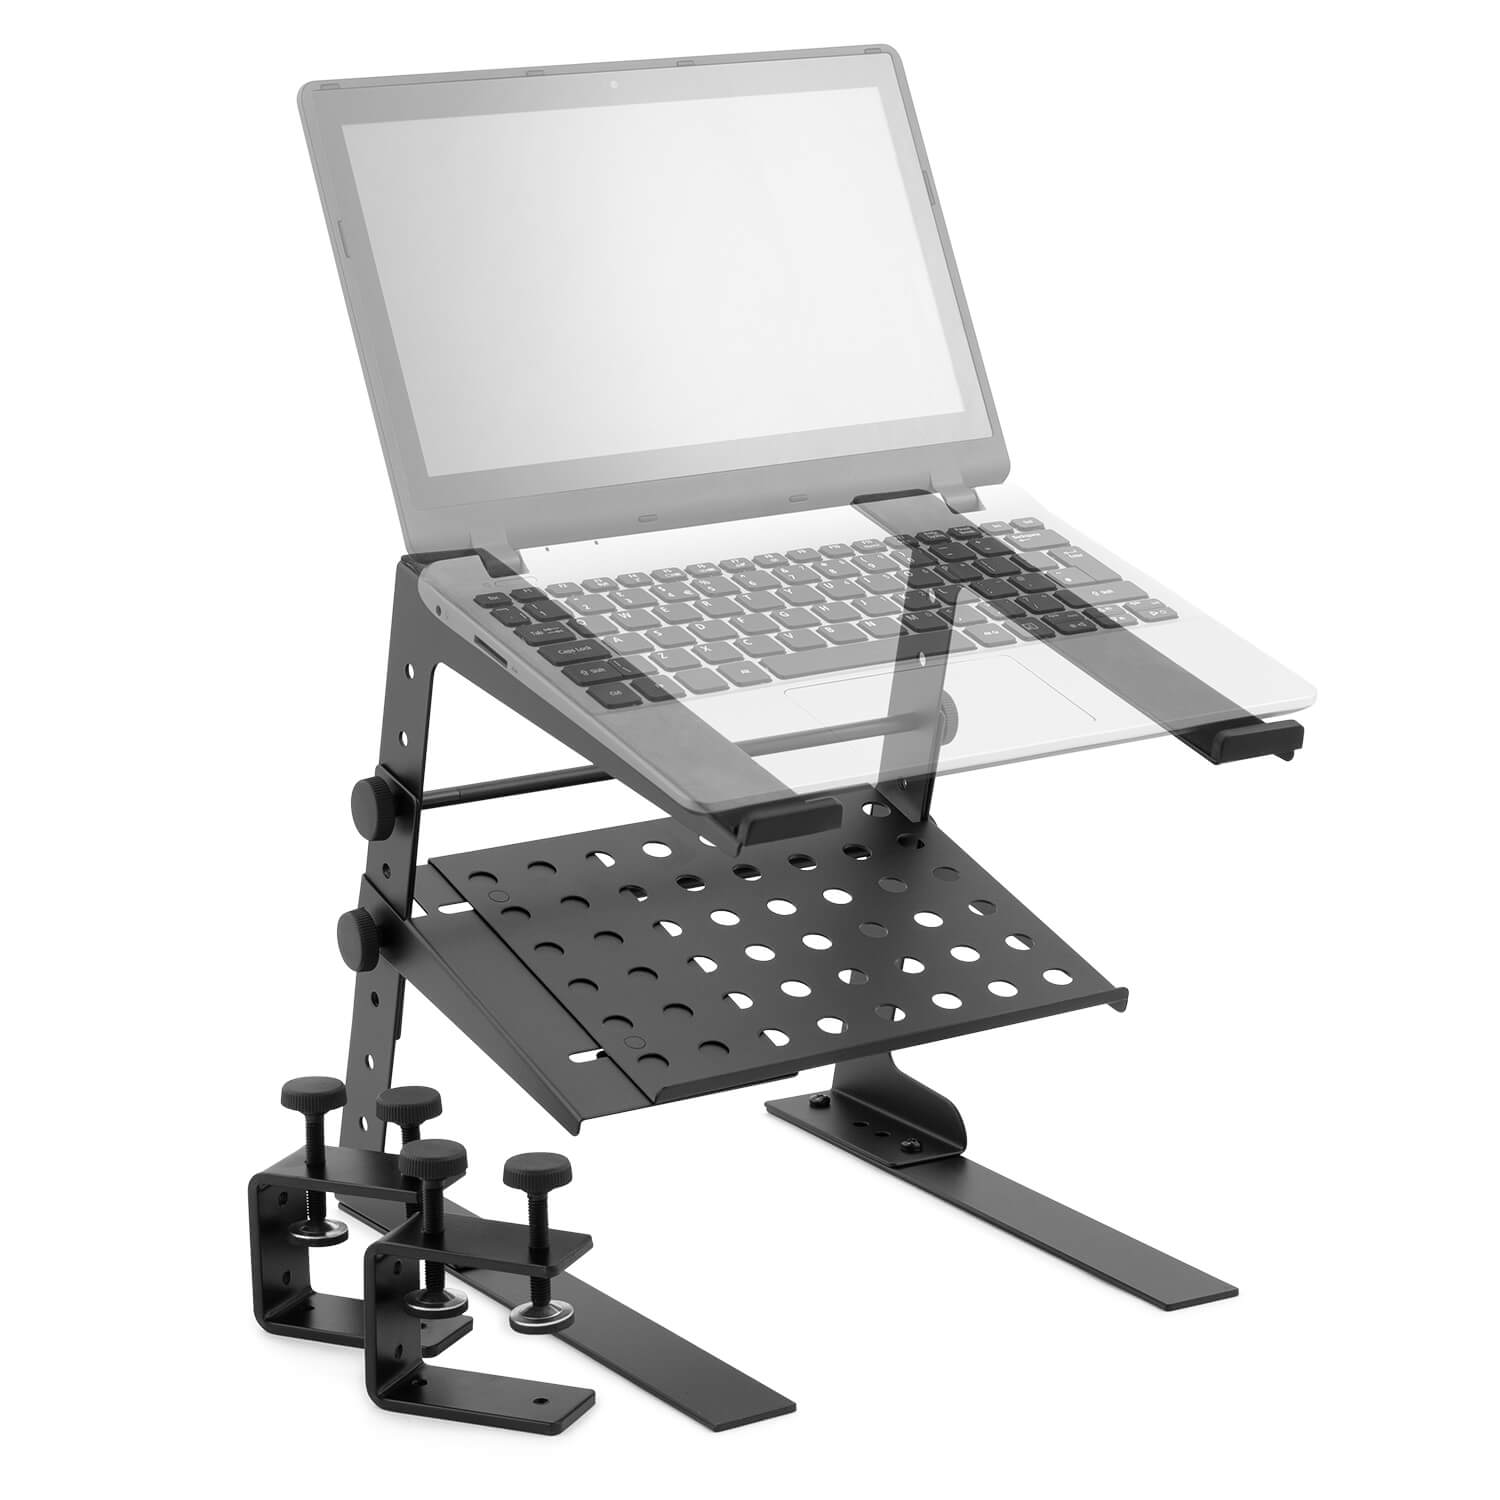 Tiger-Laptop-Stand-DJ-Stand-with-Shelf-and-Desktop-Clamps